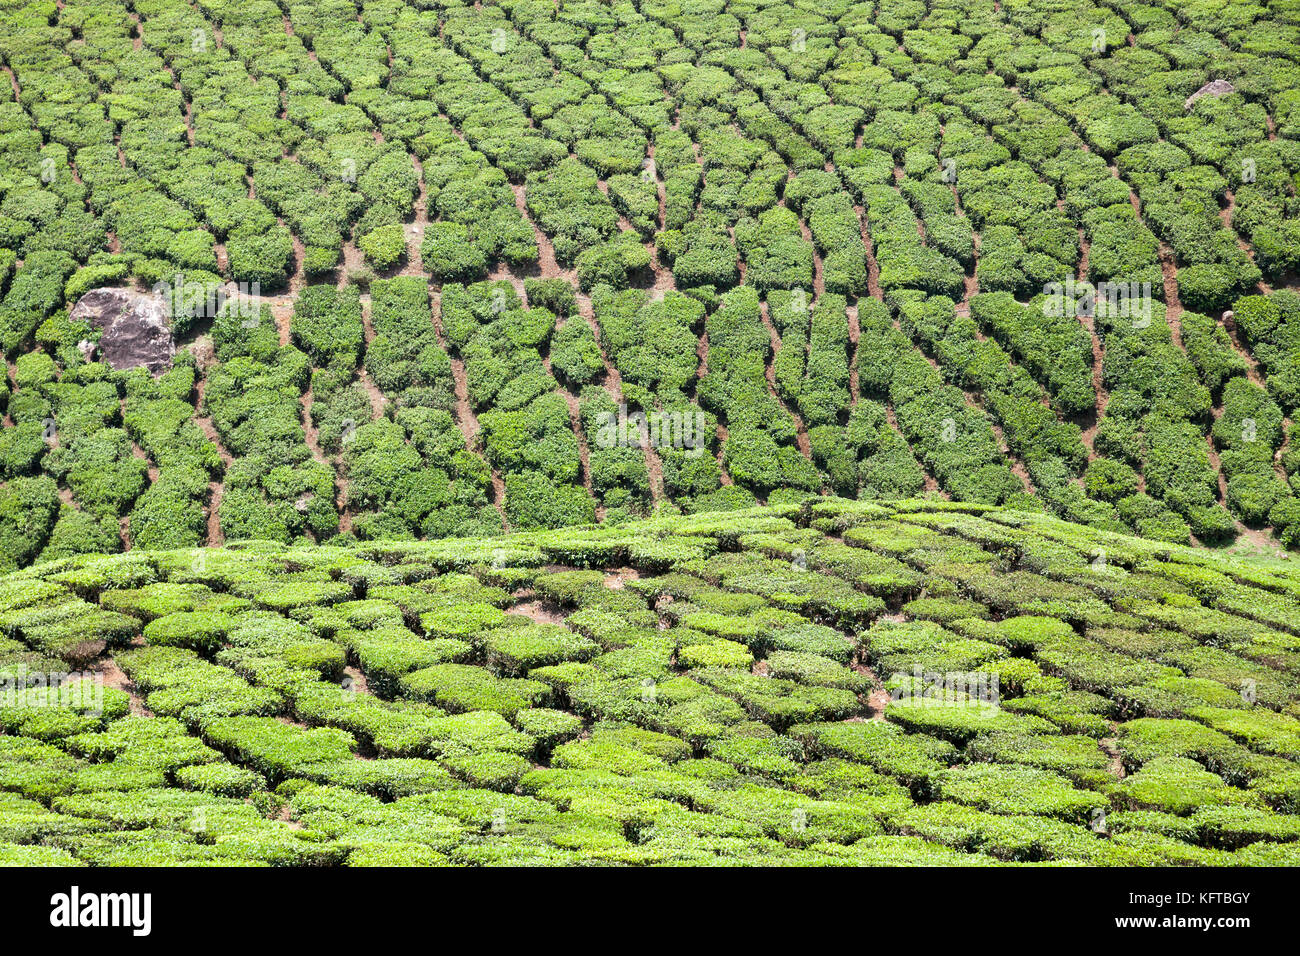 Tea plantation near Munnar in the Idukki district of the southwestern Indian state of Kerala - Stock Image